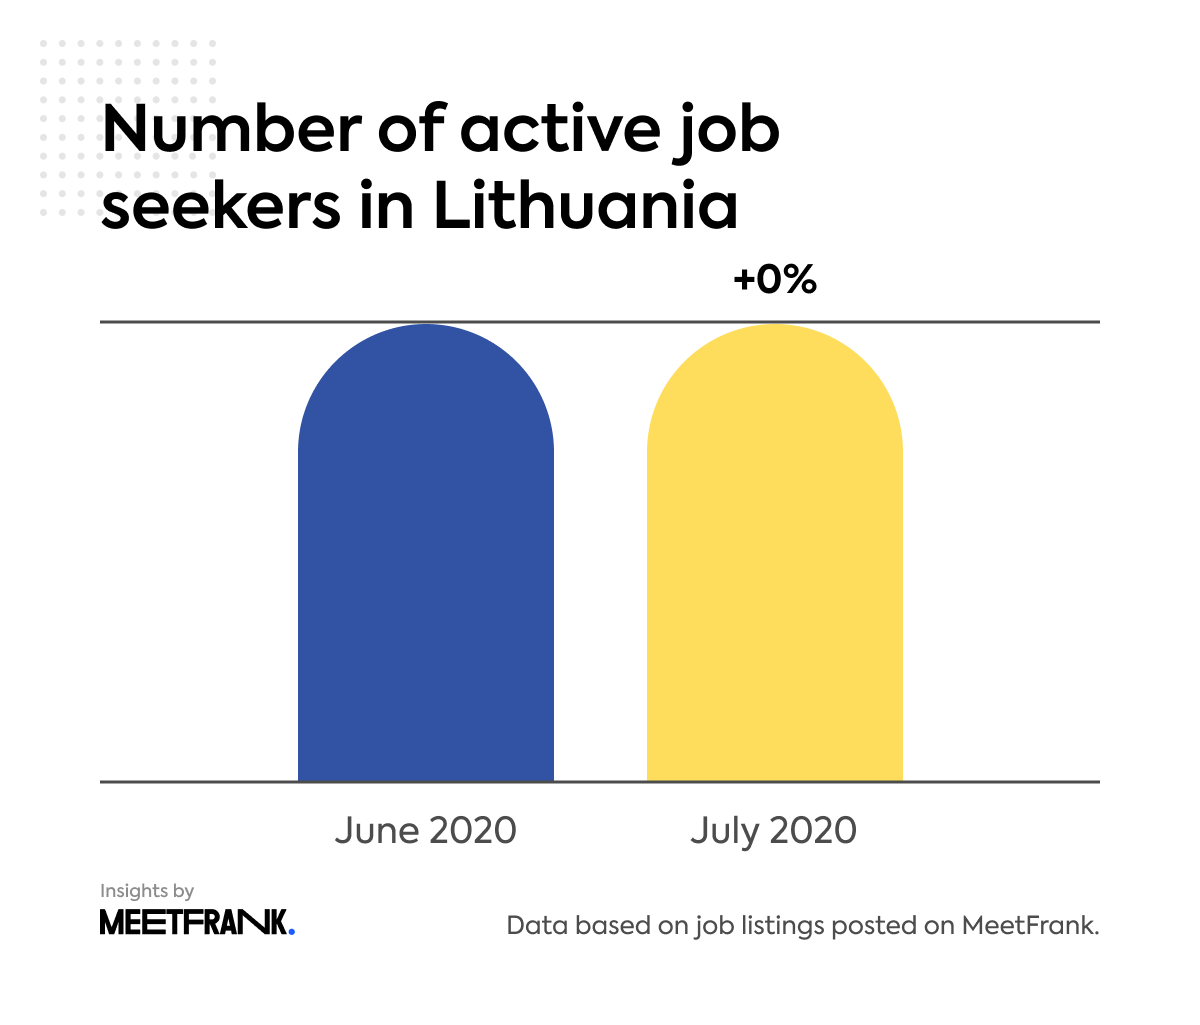 number of active job seekers in Lithuania